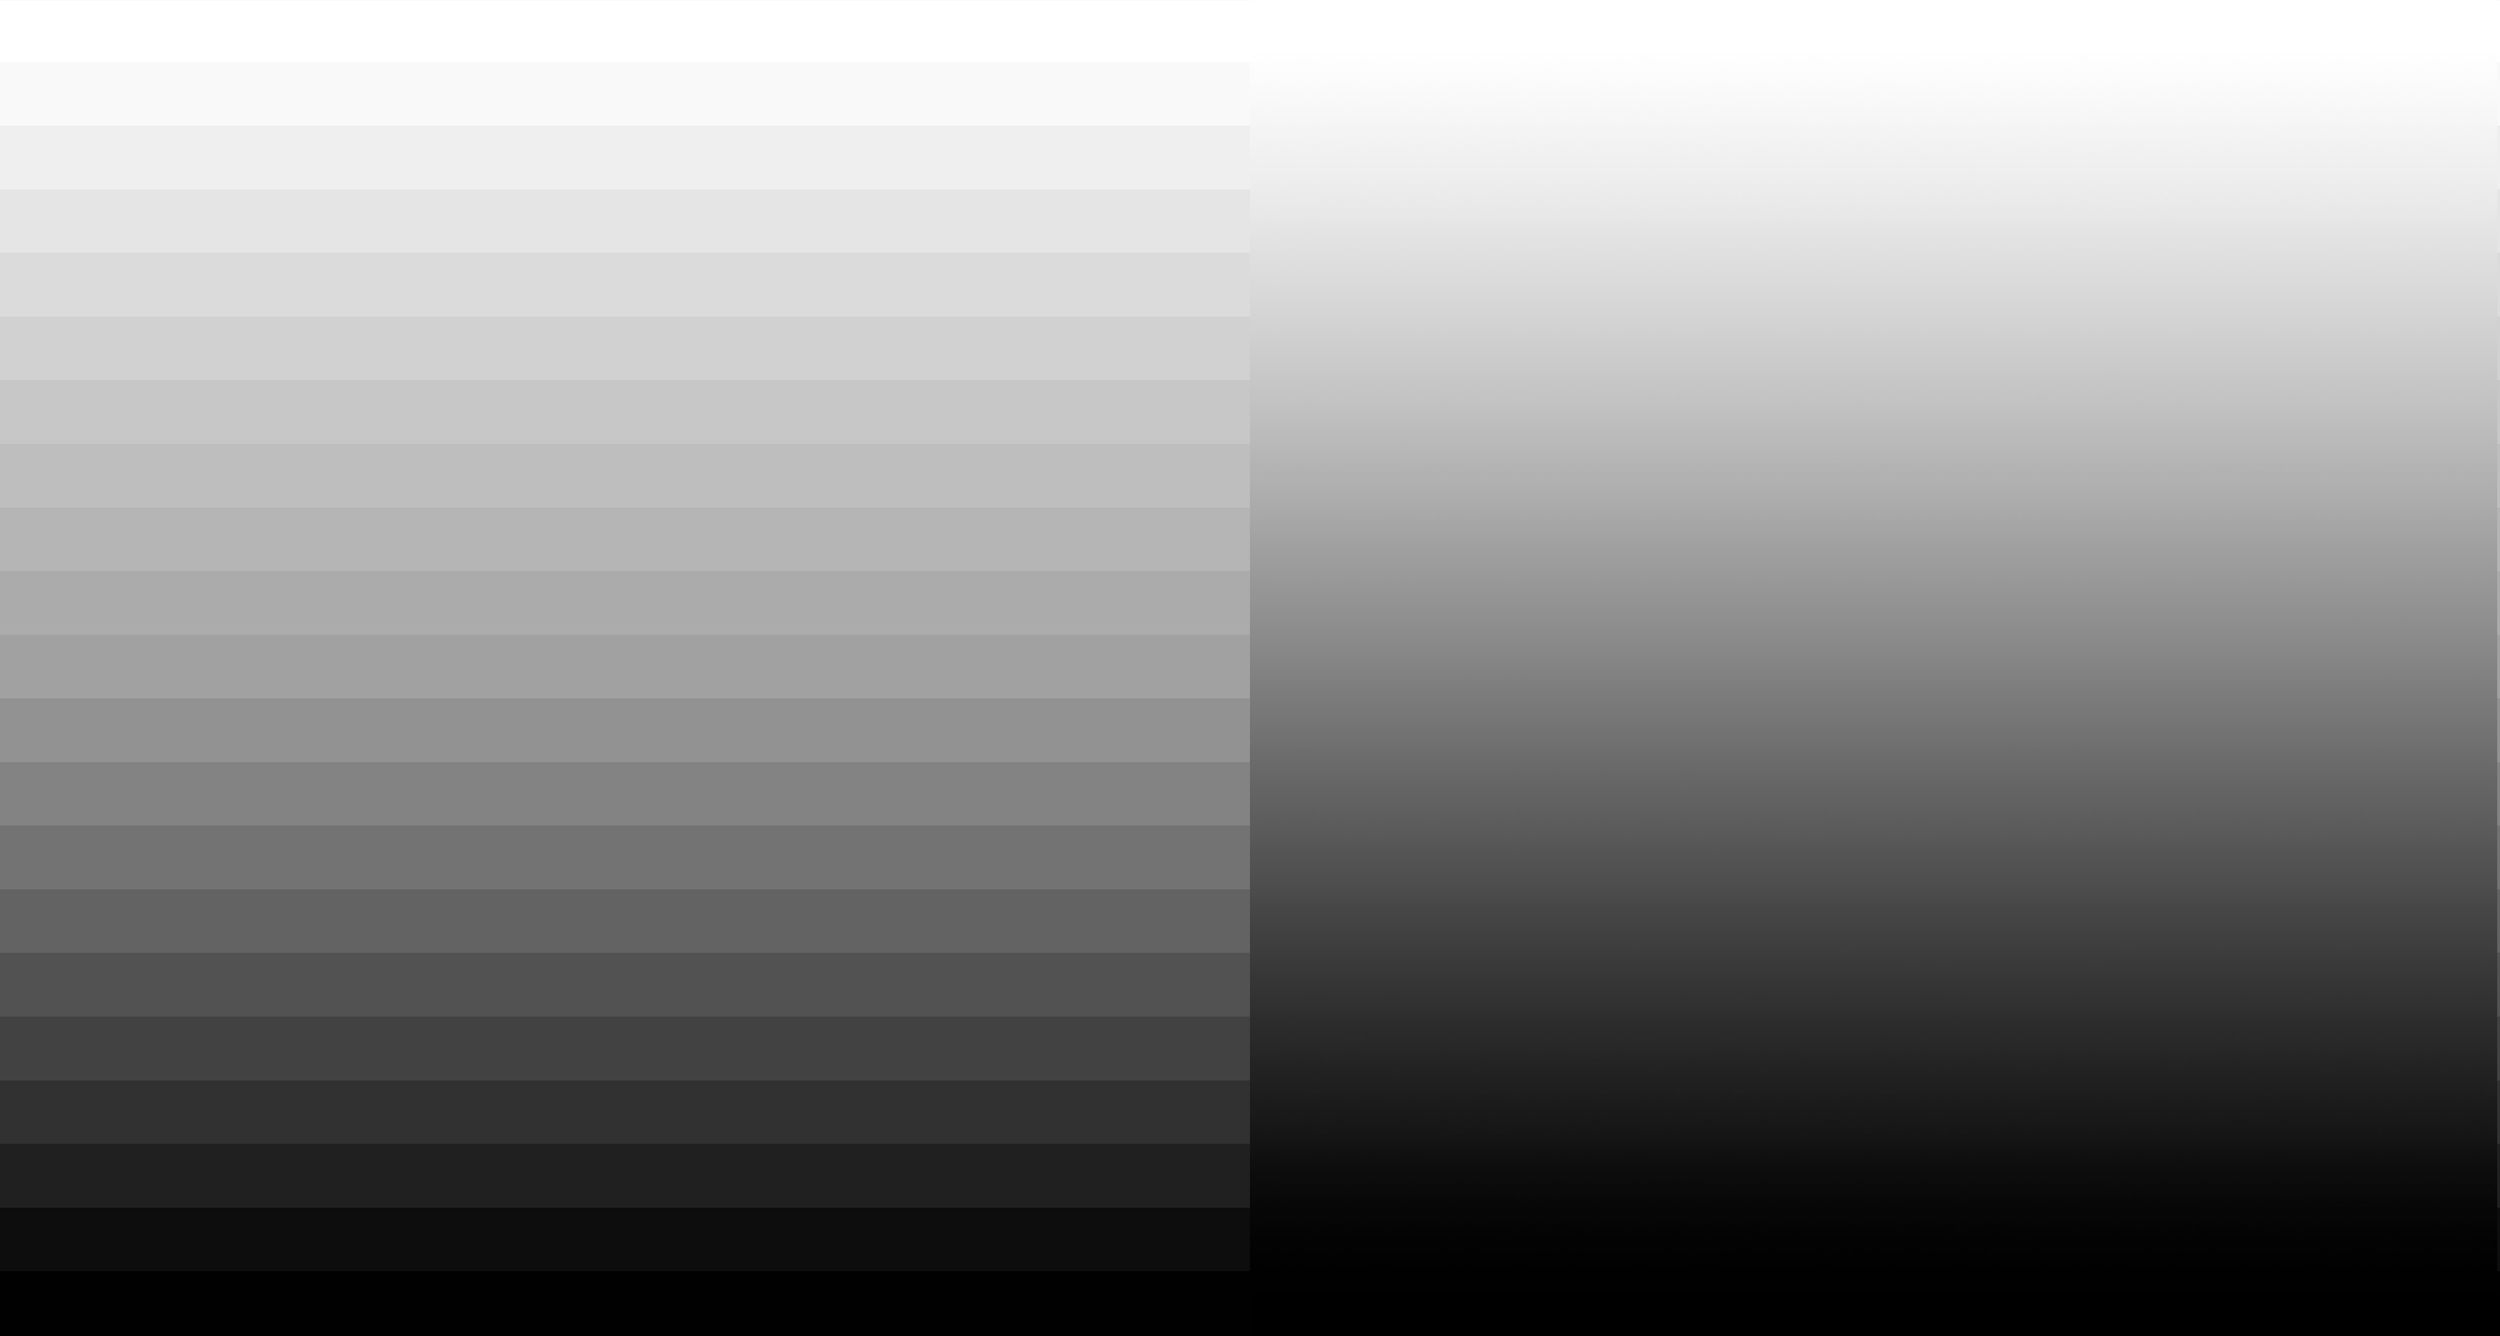 Image of grayscale contrast steps and smooth gradient